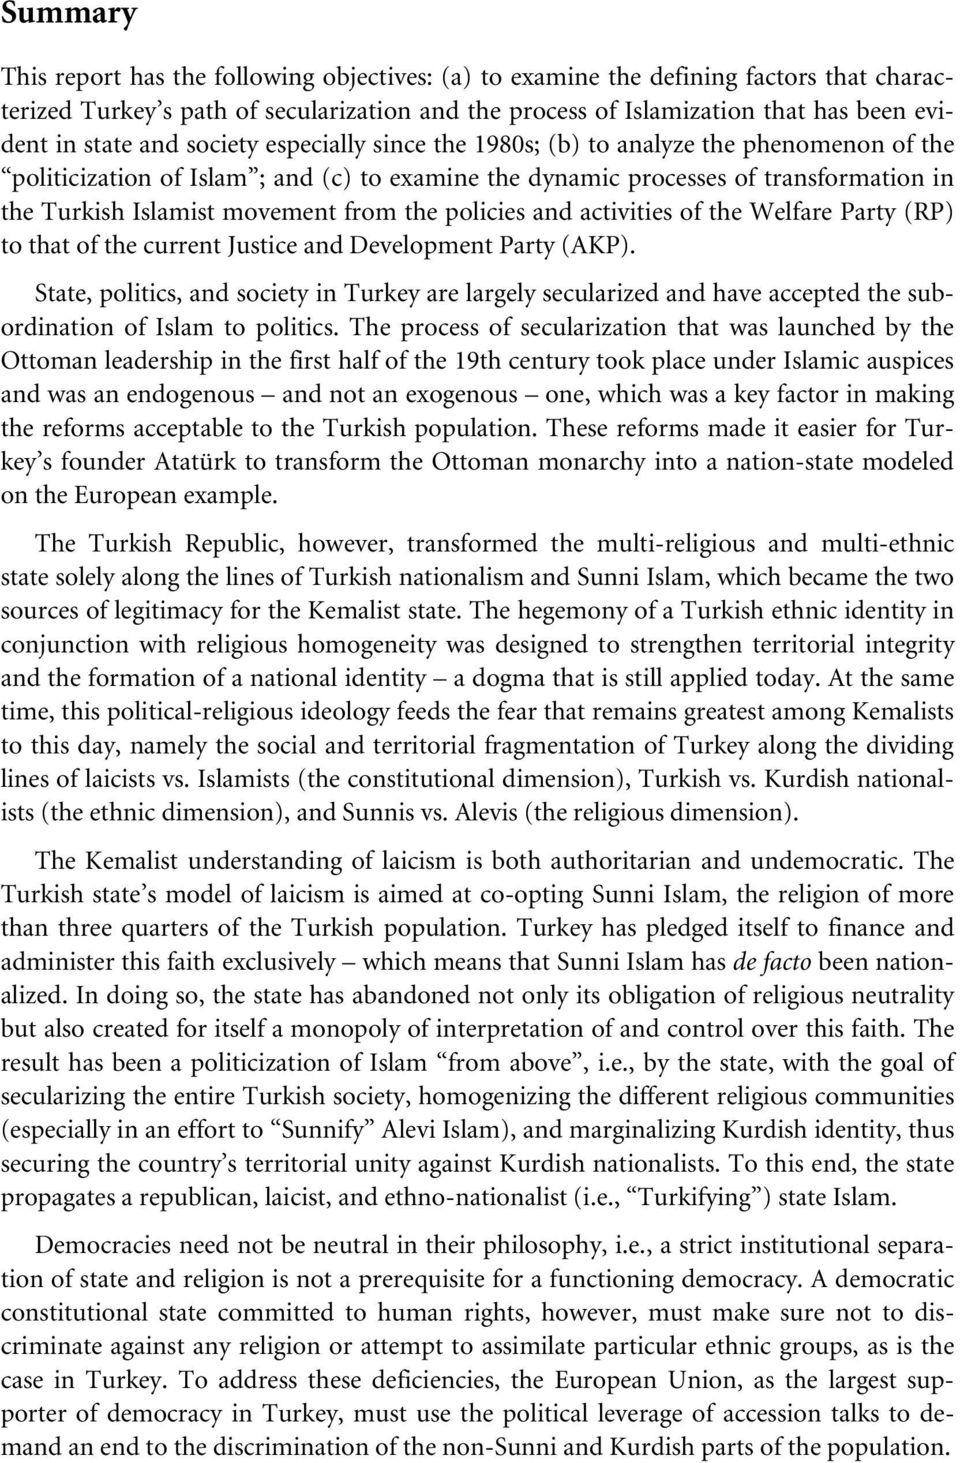 the policies and activities of the Welfare Party (RP) to that of the current Justice and Development Party (AKP).